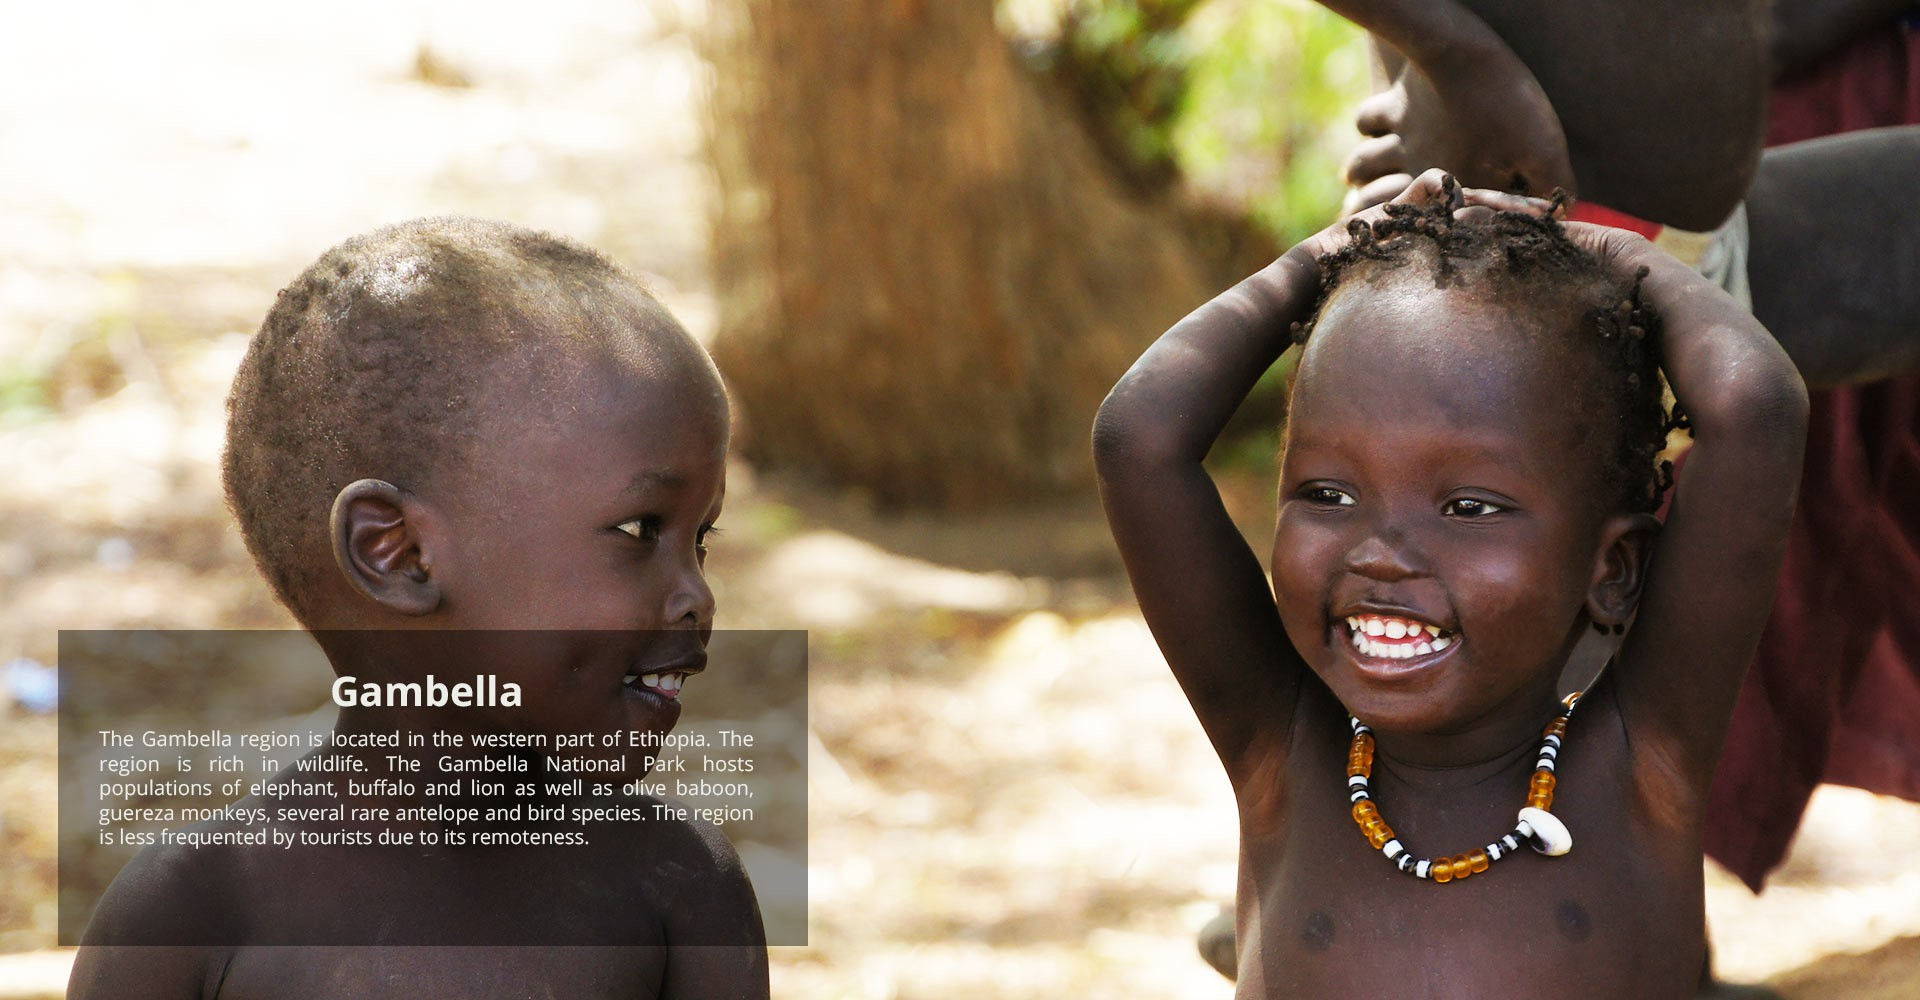 gambella-children